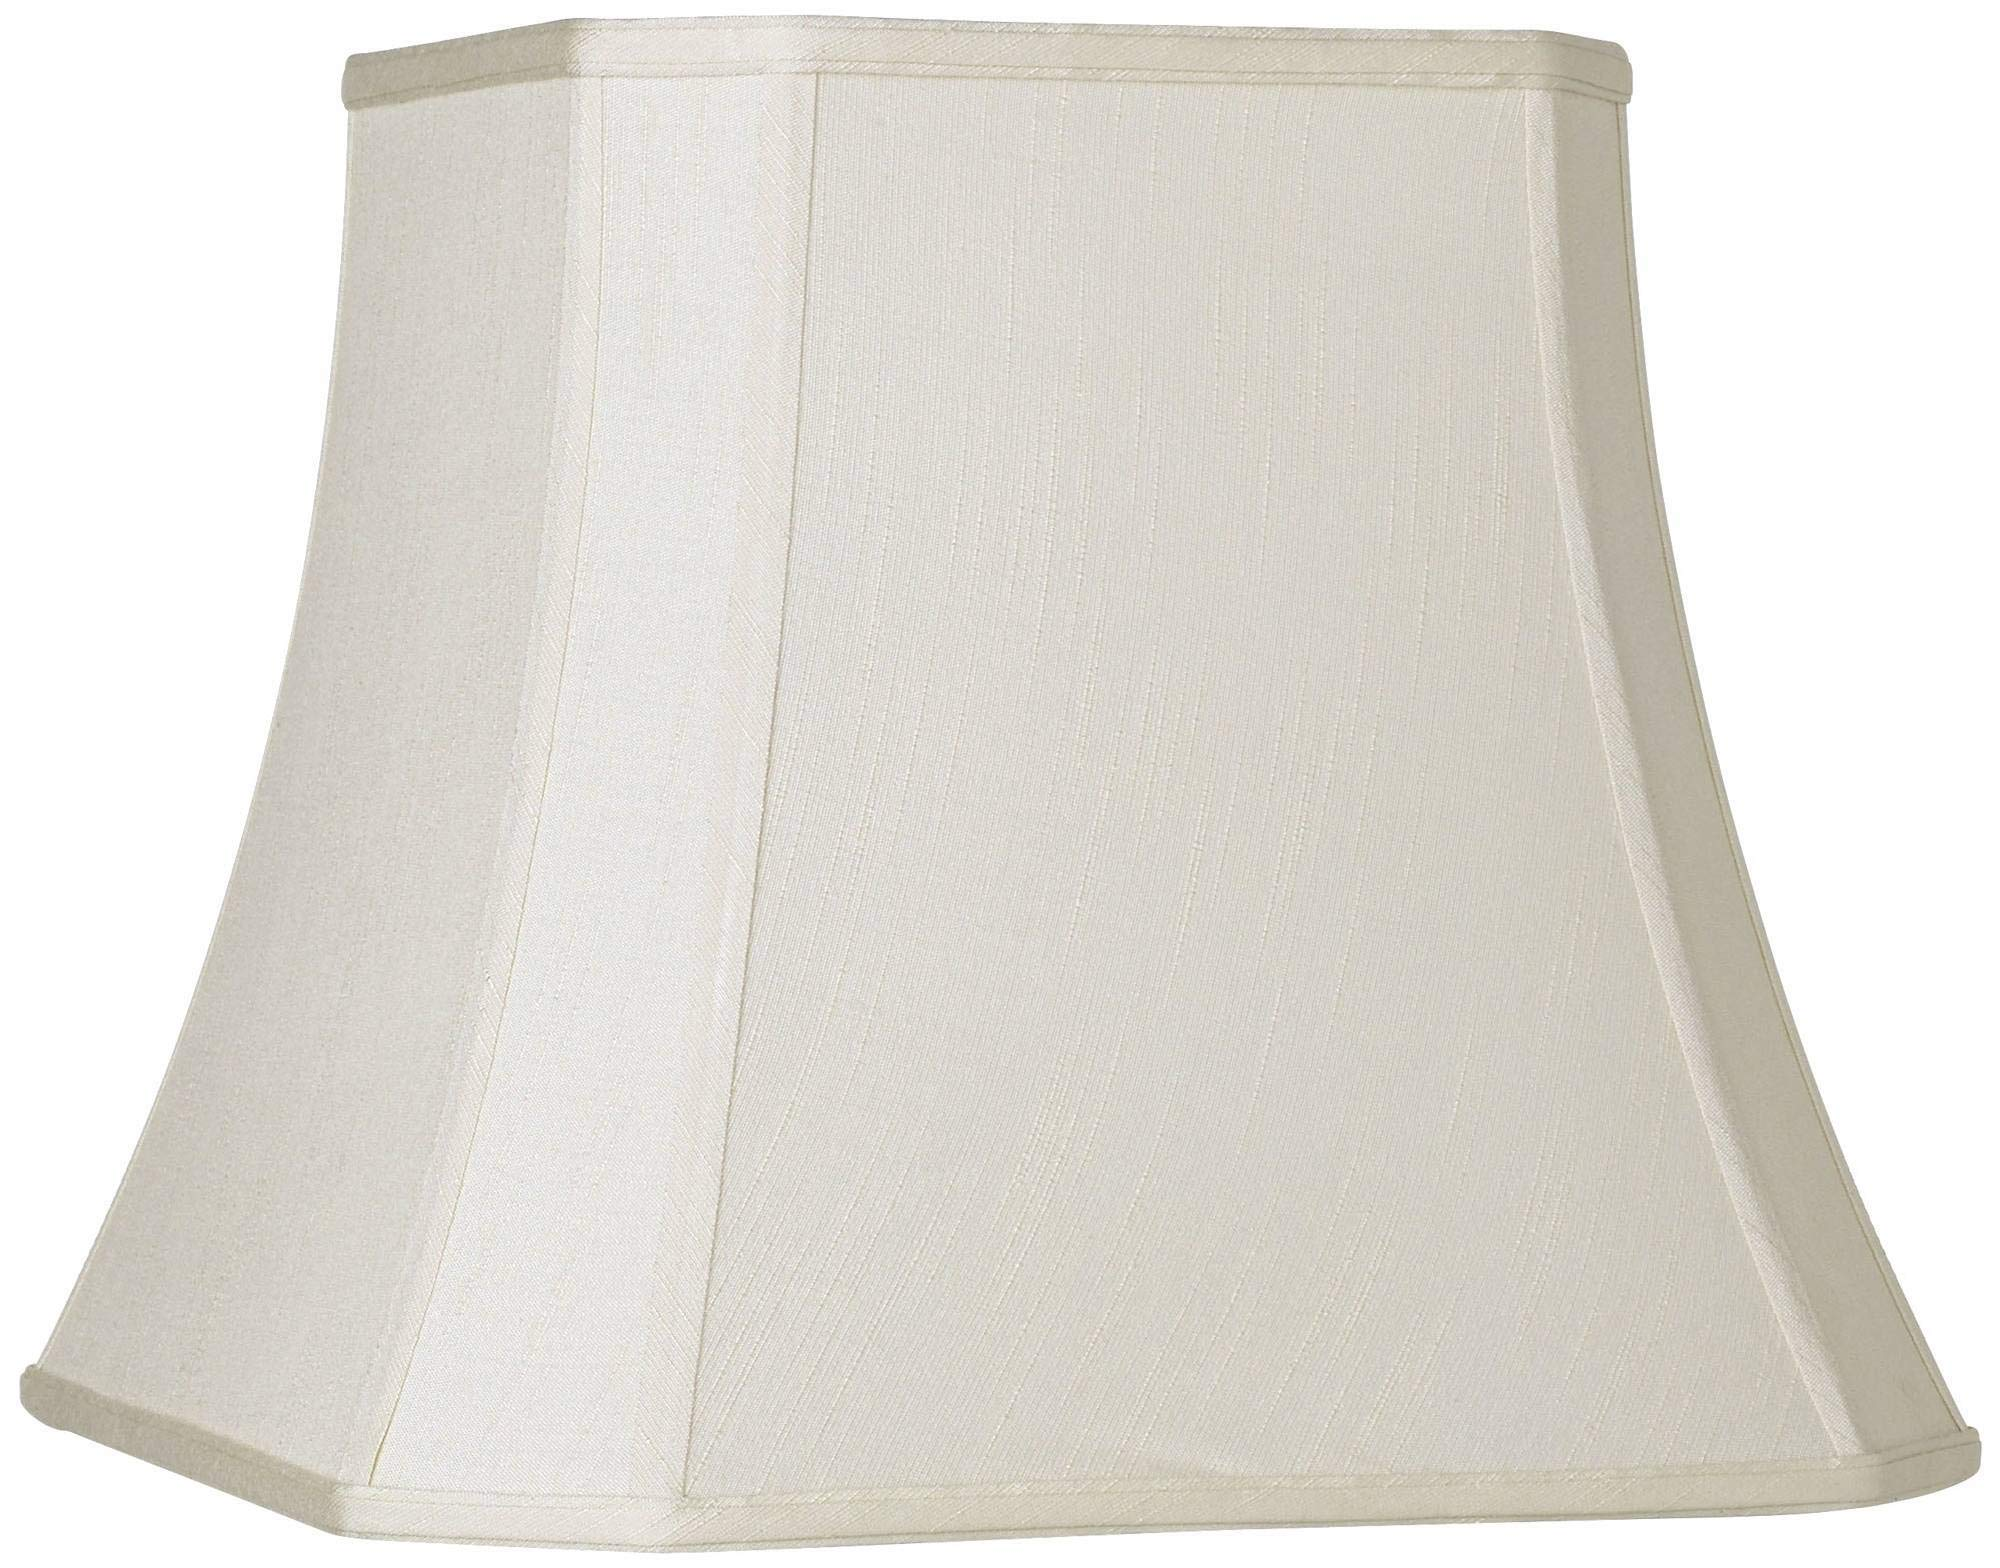 Imperial Creme Square Cut Corner Shade 10.5x16x14 (Spider) - Imperial Shade